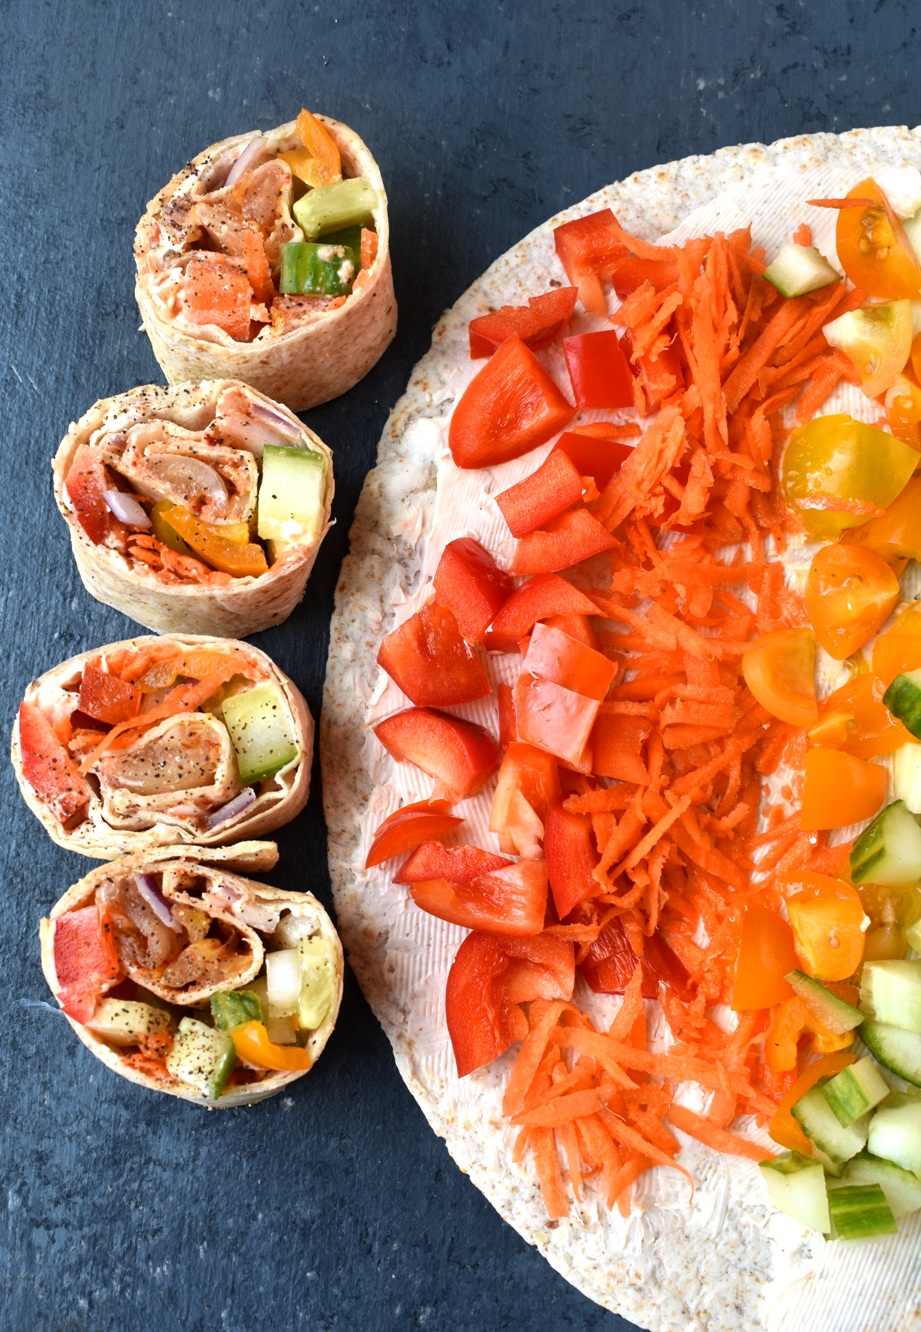 Rainbow Veggie Pinwheels are loaded with vegetable cream cheese, peppers, tomatoes, cucumber, red onion, carrots and kimchi on a whole-grain wrap. Perfect for entertaining, an easy appetizer or lunch!